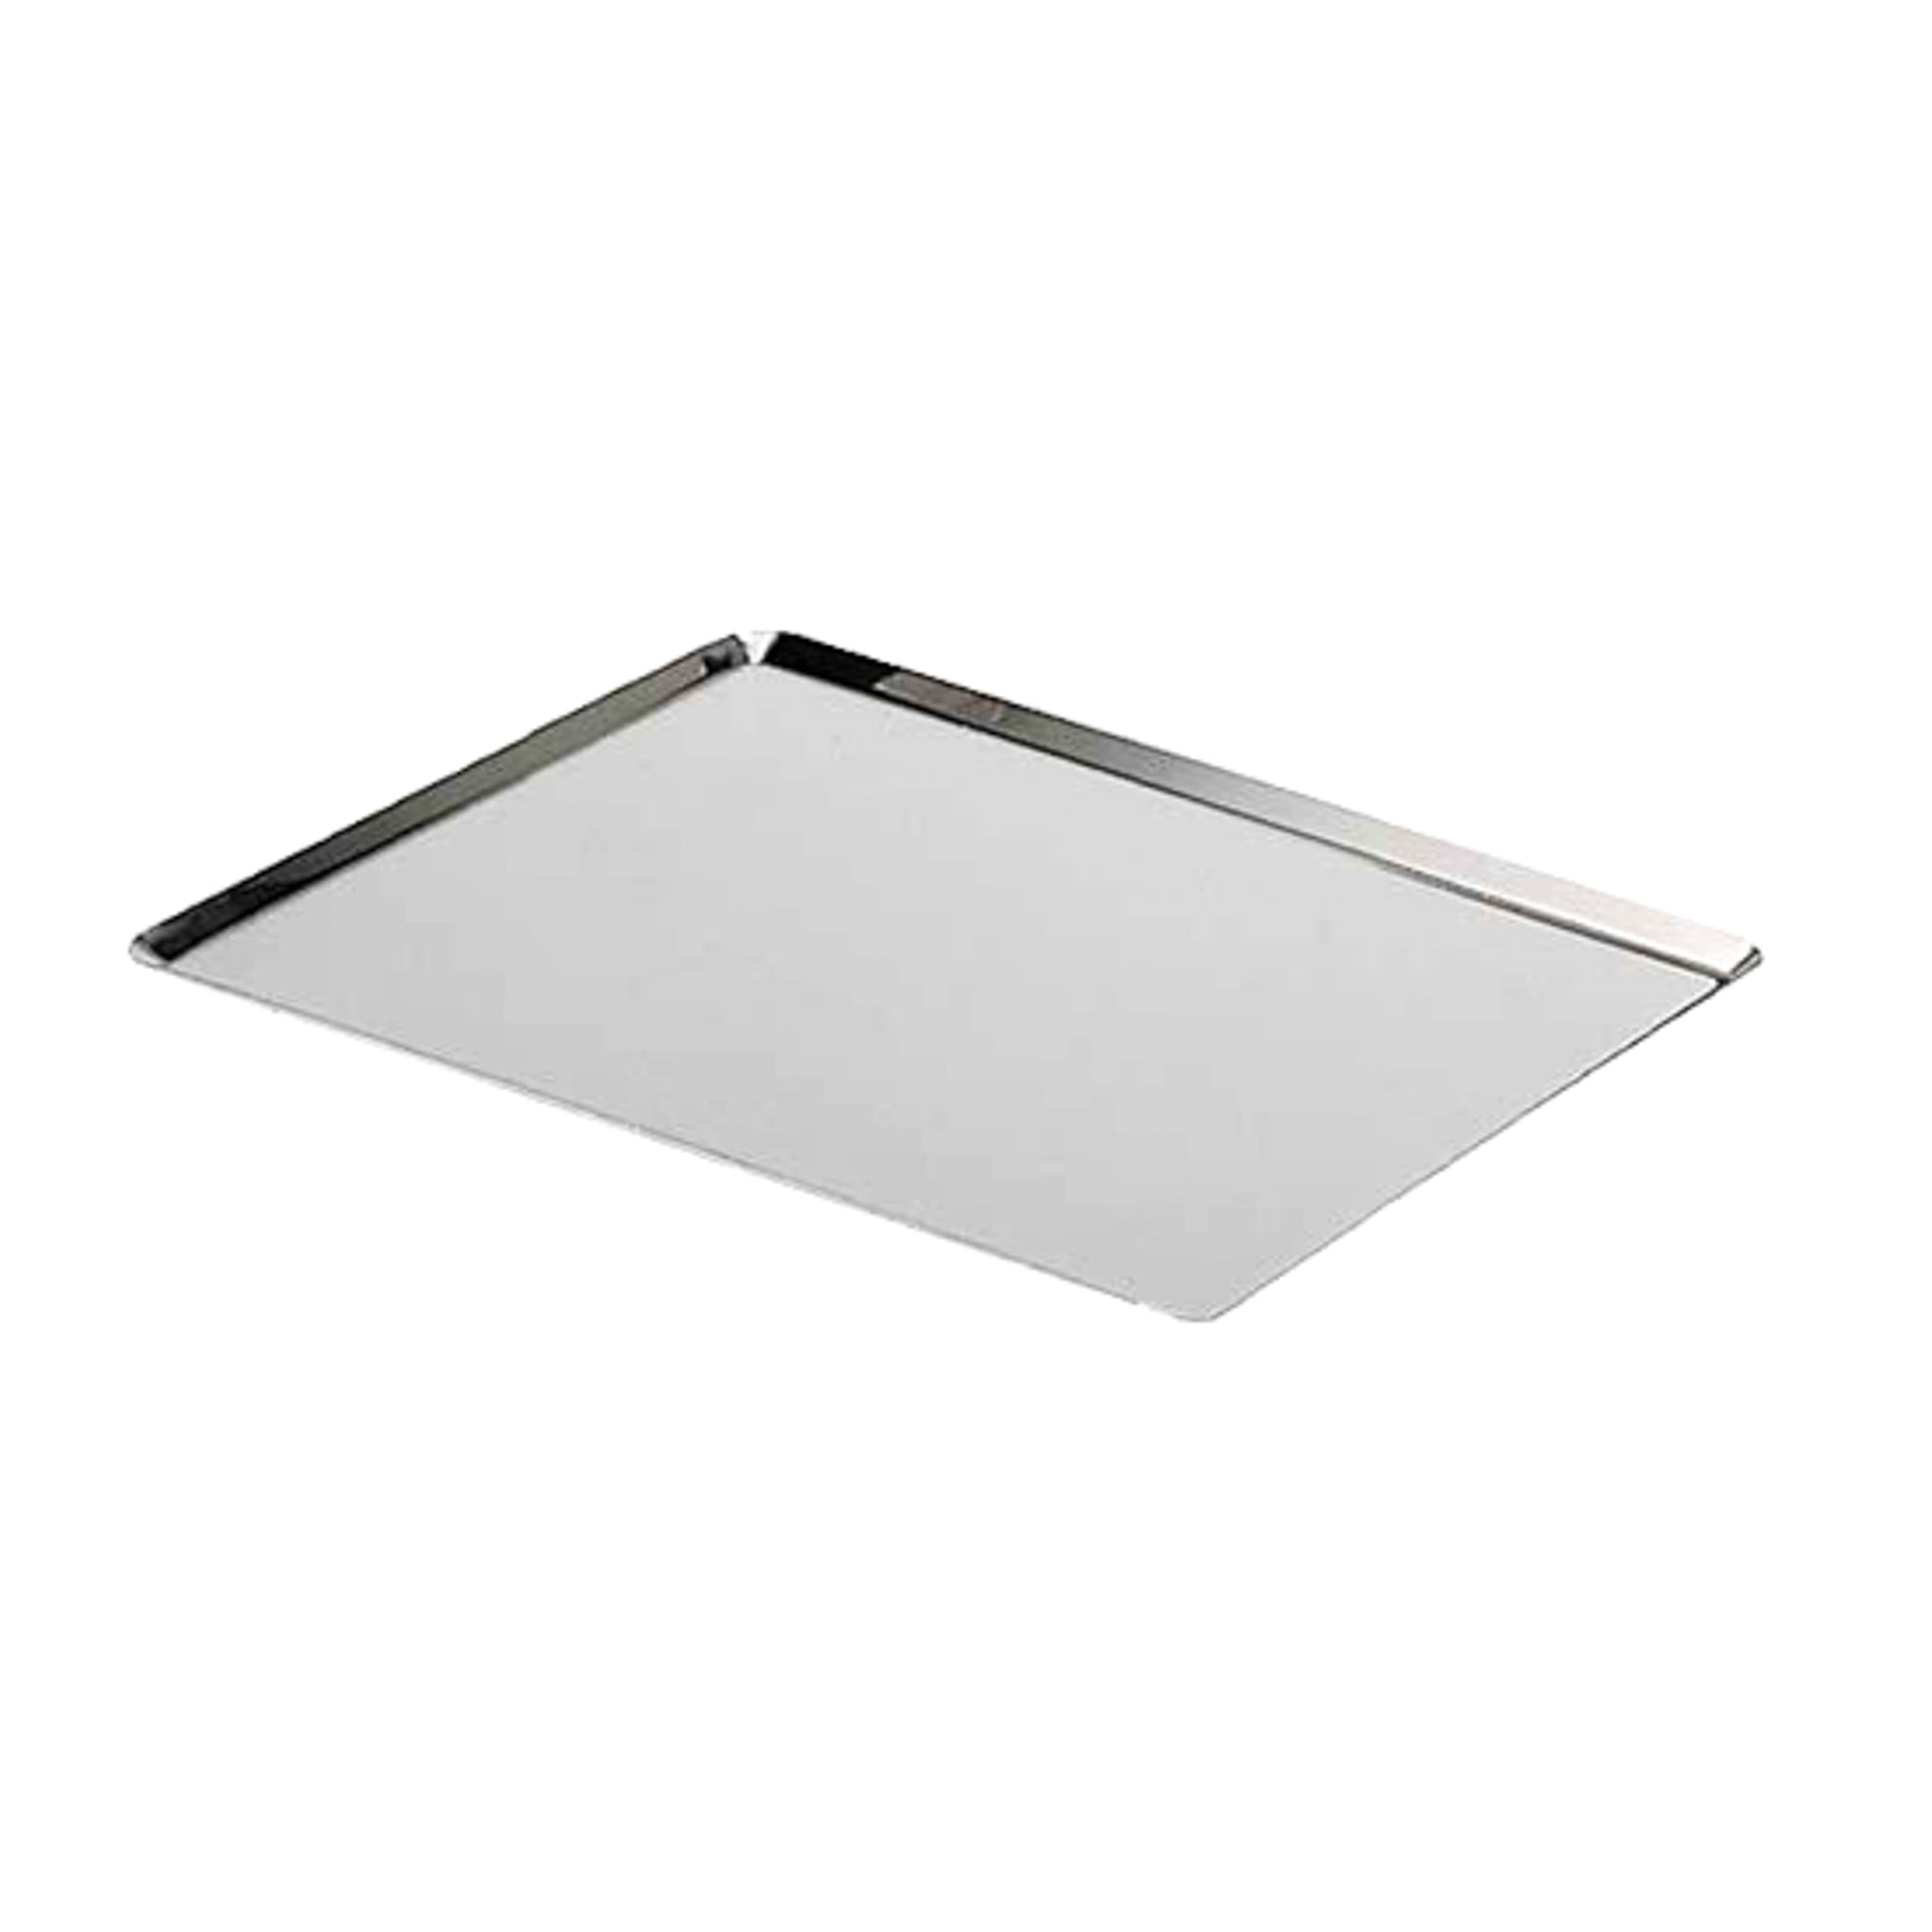 De Buyer Stainless Steel Baking Tray - Oblique Edges Cookware Bakeware & Roasting French Food